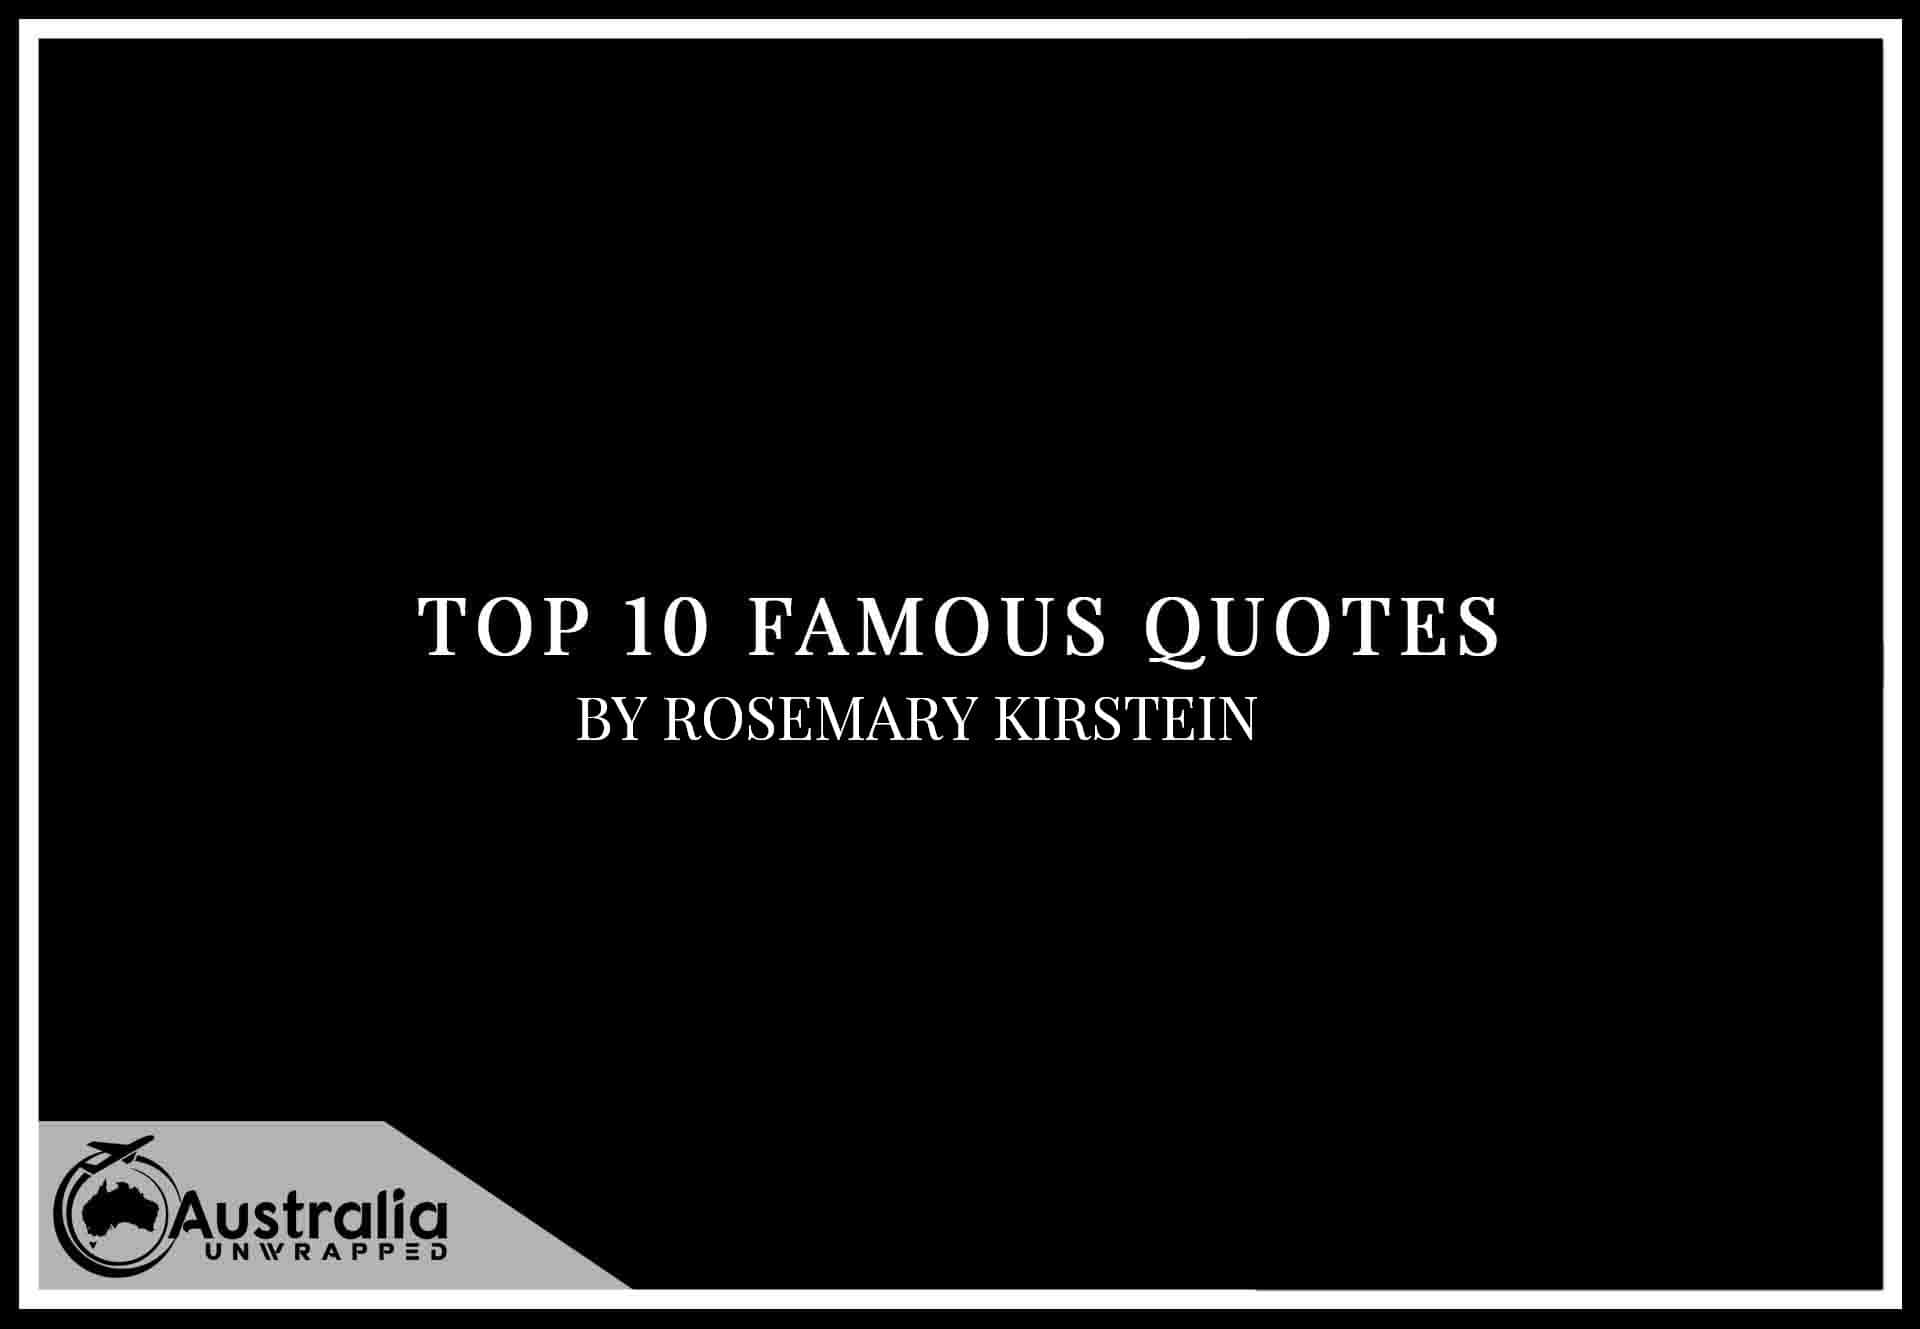 Top 10 Famous Quotes by Author Rosemary Kirstein